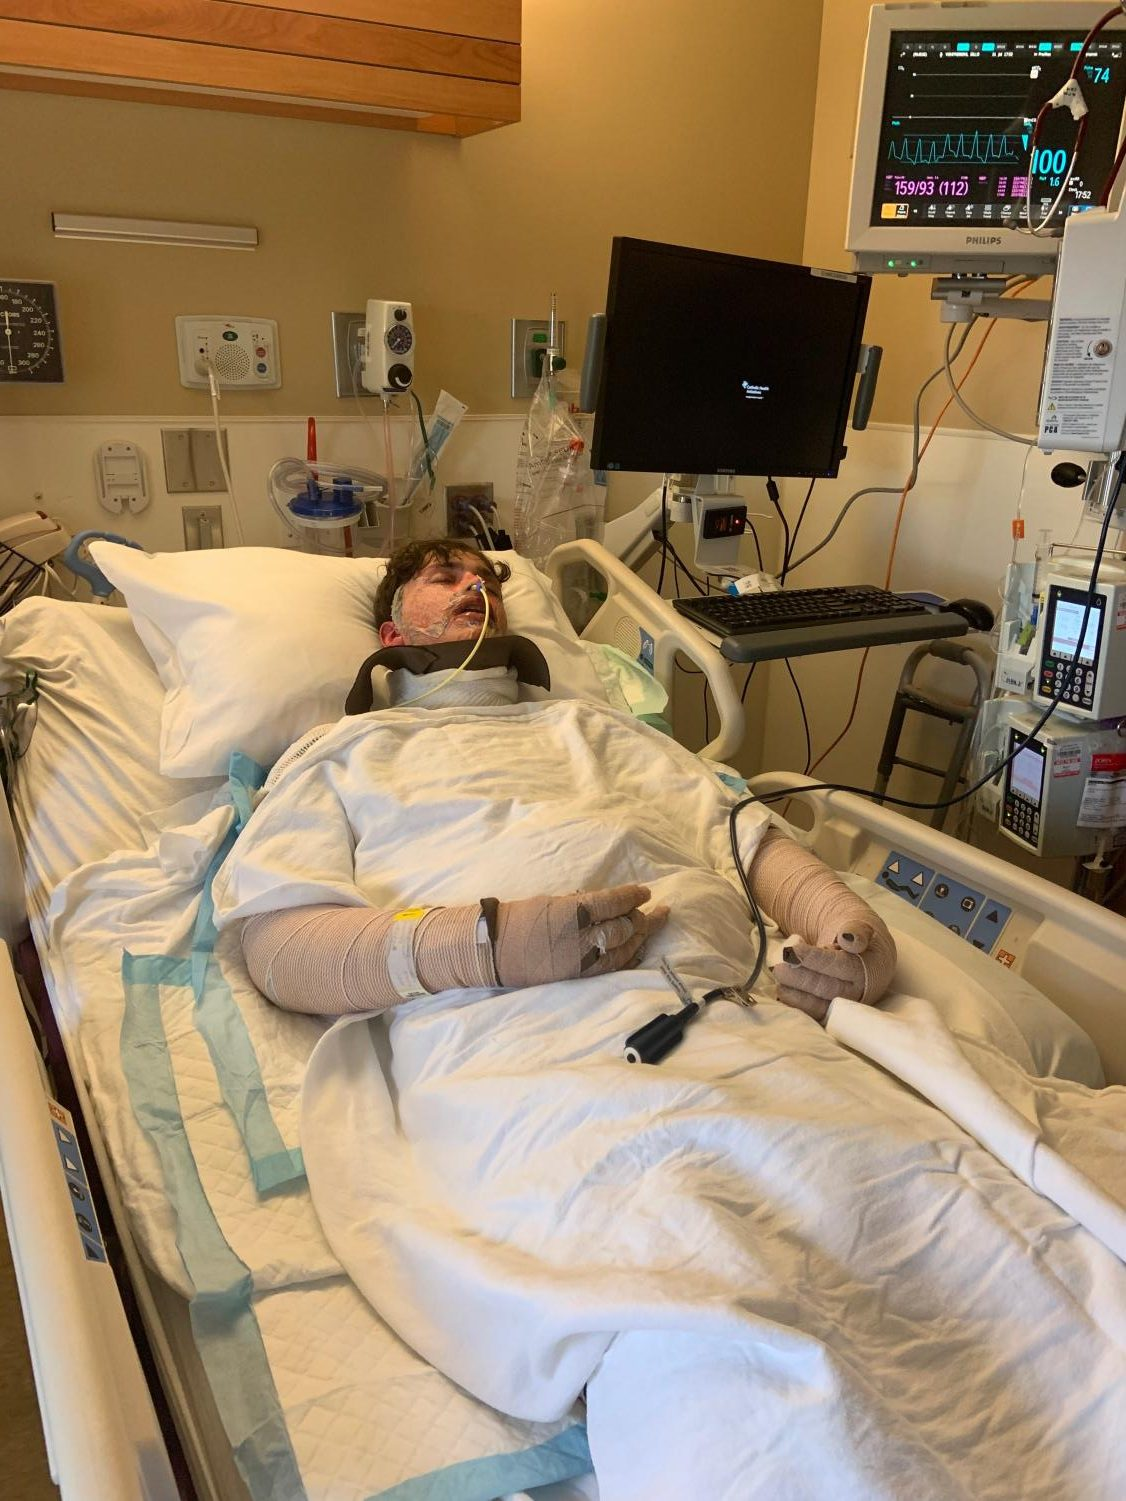 """Hanging on to his life, sophomore Dillon Von Freiberg receives treatment for Steven-Johnson Syndrome. Von Freiberg spent an entire month in the burn unit of the hospital where he wasn't able to eat, drink, or move. """"I had just gotten out of surgery, they had to put a feeding tube in me because everything including my mouth blistered,"""" Von Freiberg said. """"I wasn't able to eat food and I was passed out because of the meds they gave me."""""""